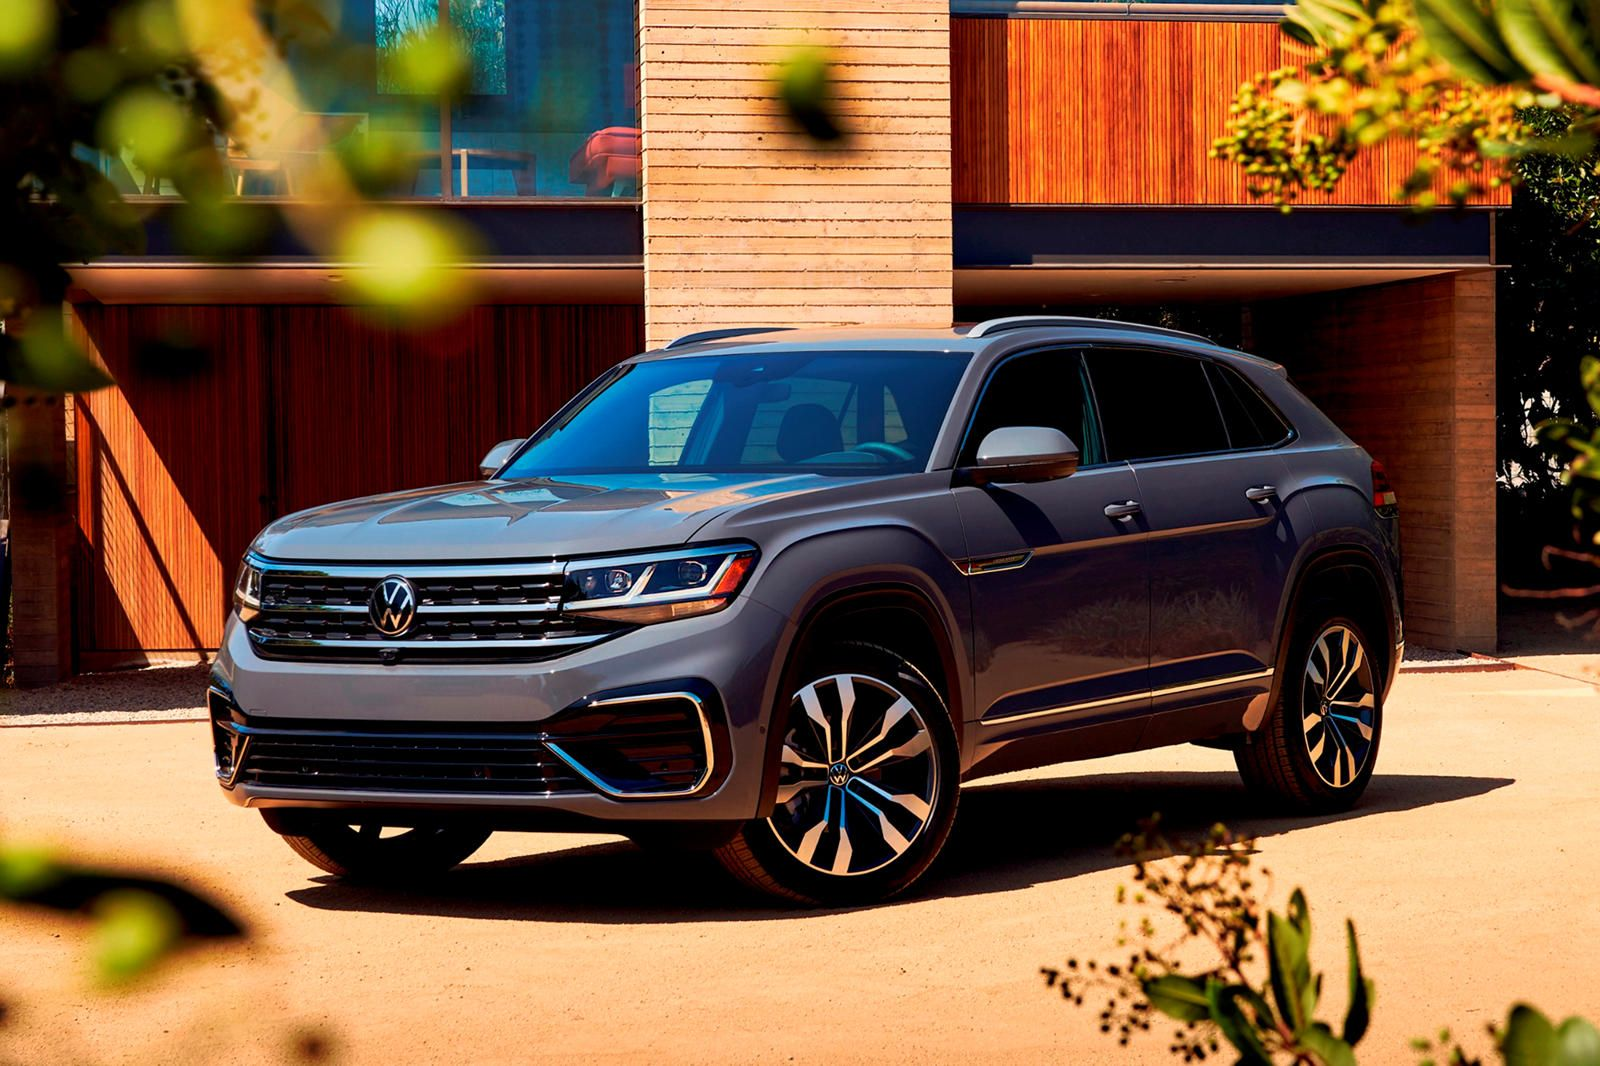 2020 Volkswagen Atlas Cross Sport First Drive Review A Focus Group Gone Right The Tennessee Built Midsize Suv Portrays Ameri In 2020 Volkswagen Suv Volkswagen Passat